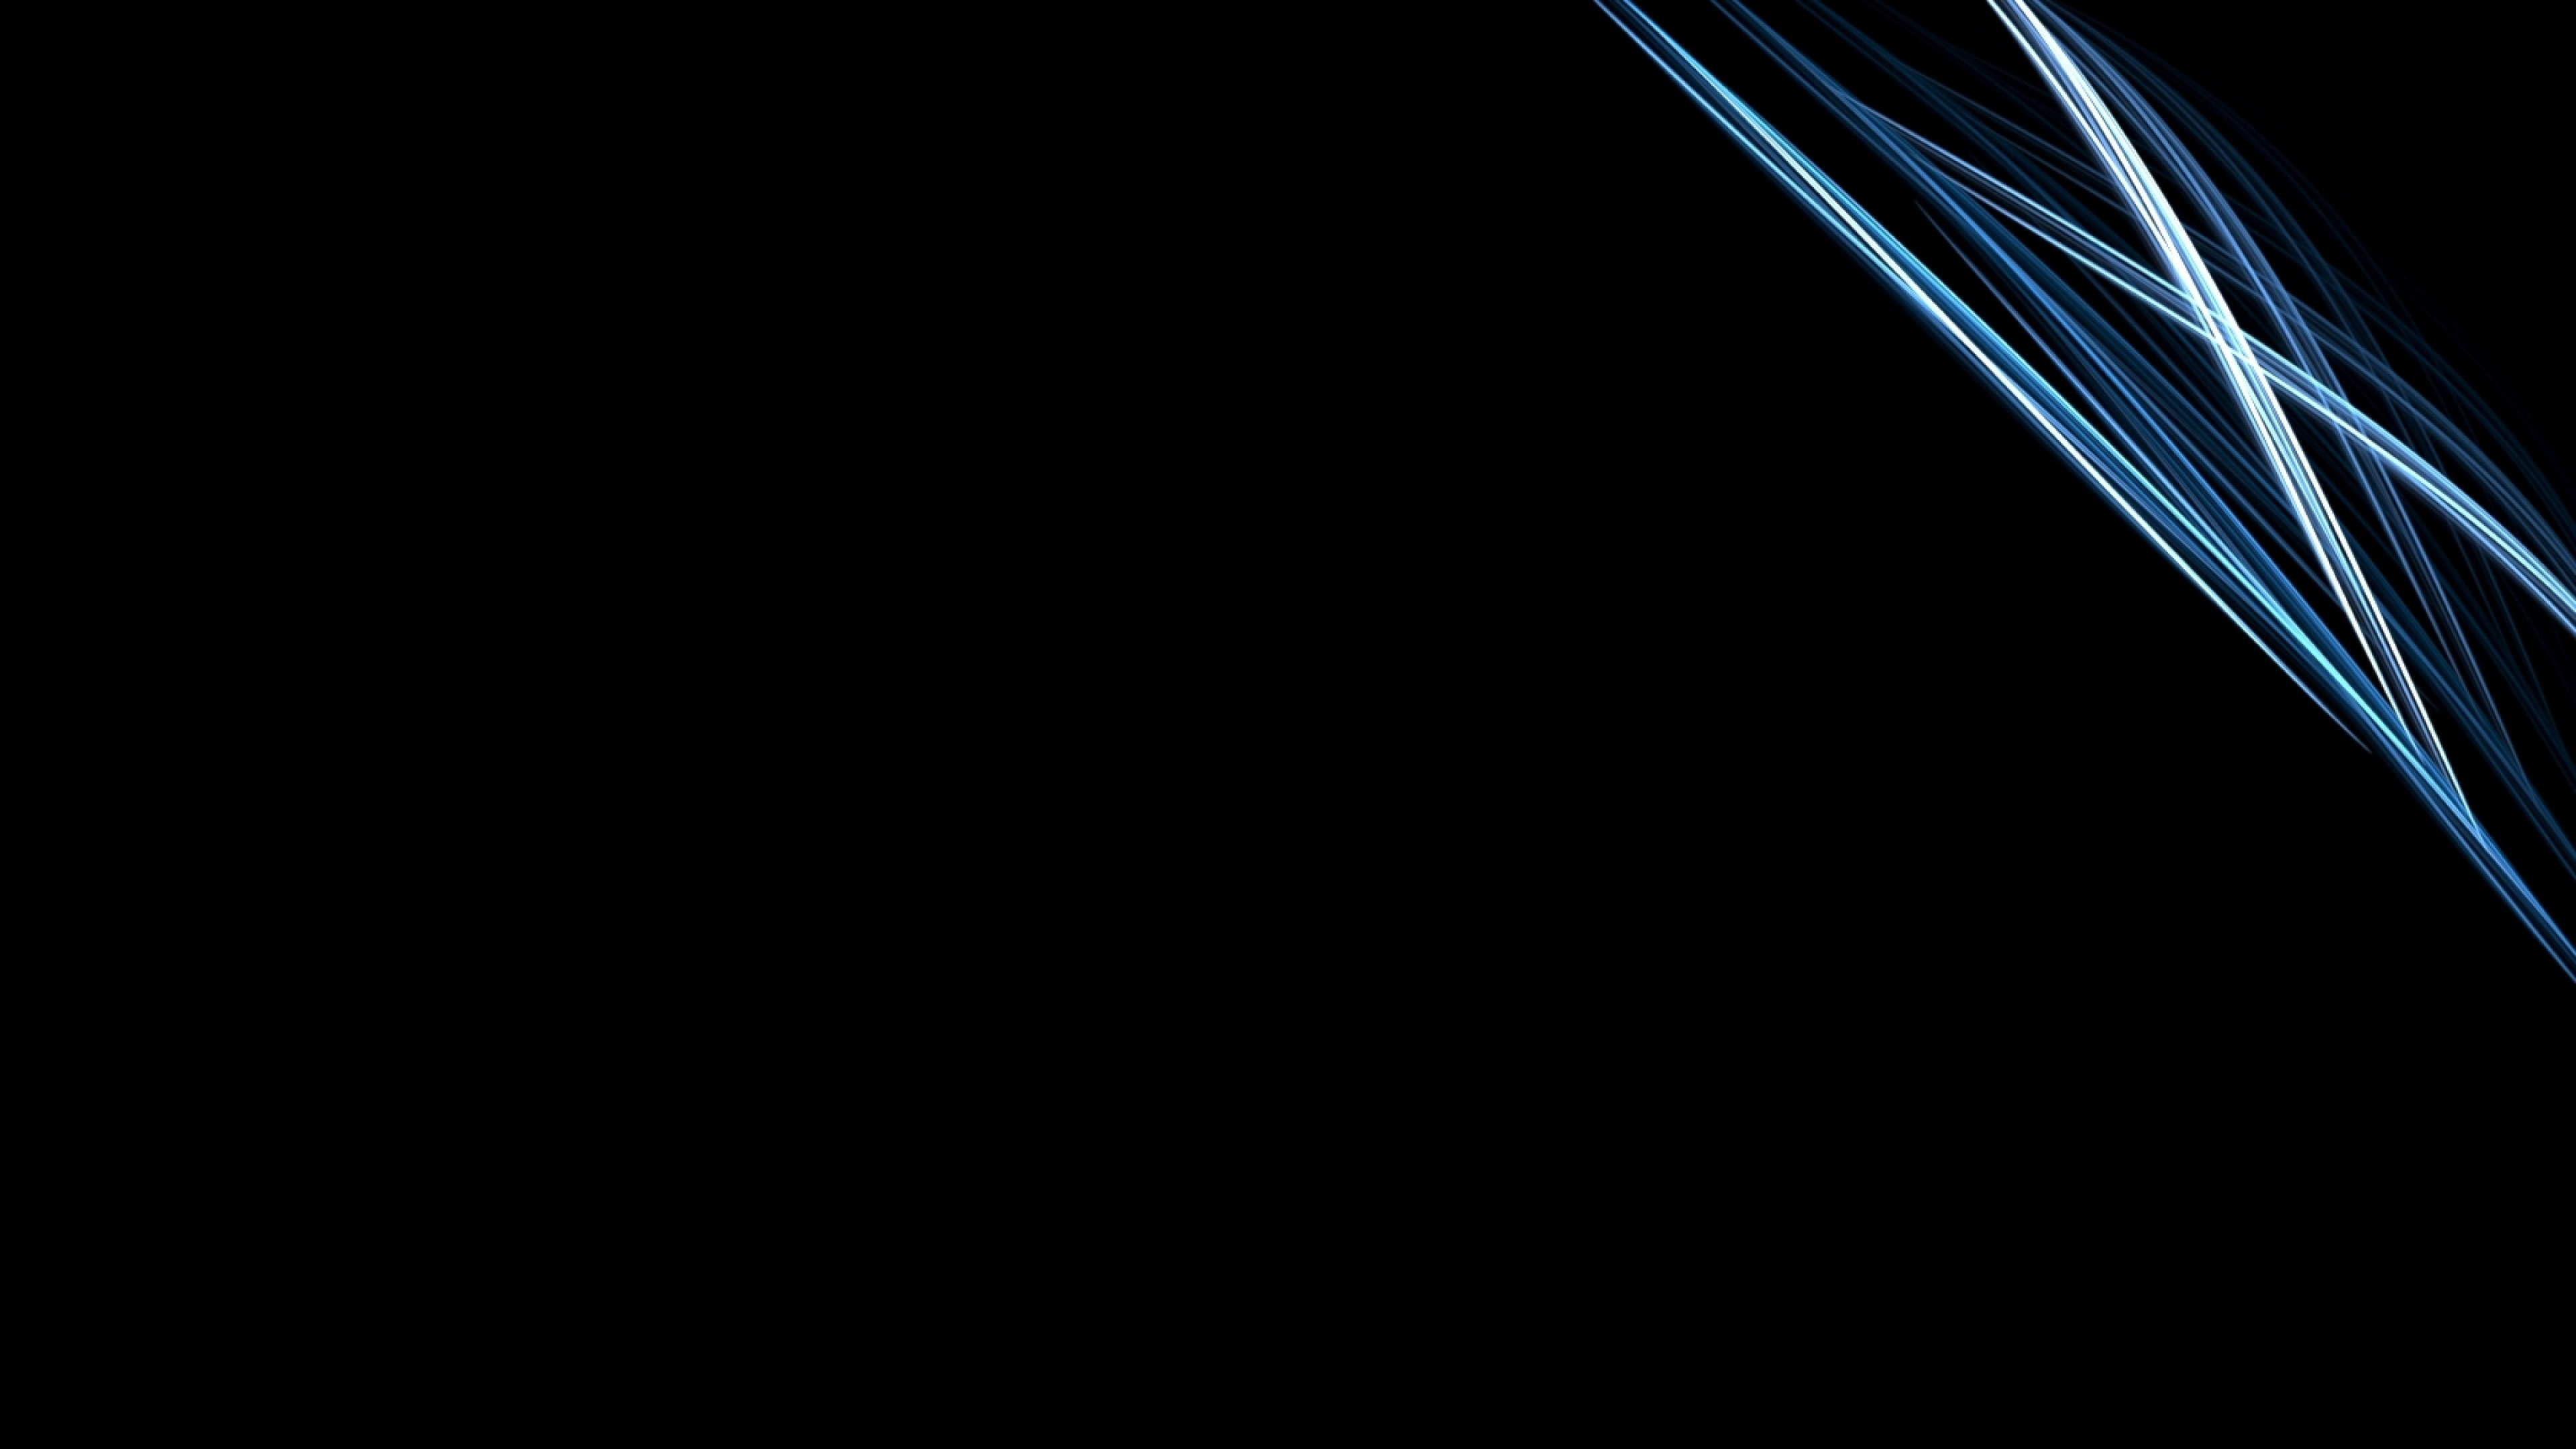 3840x2160 Preview wallpaper black, white, line, silver